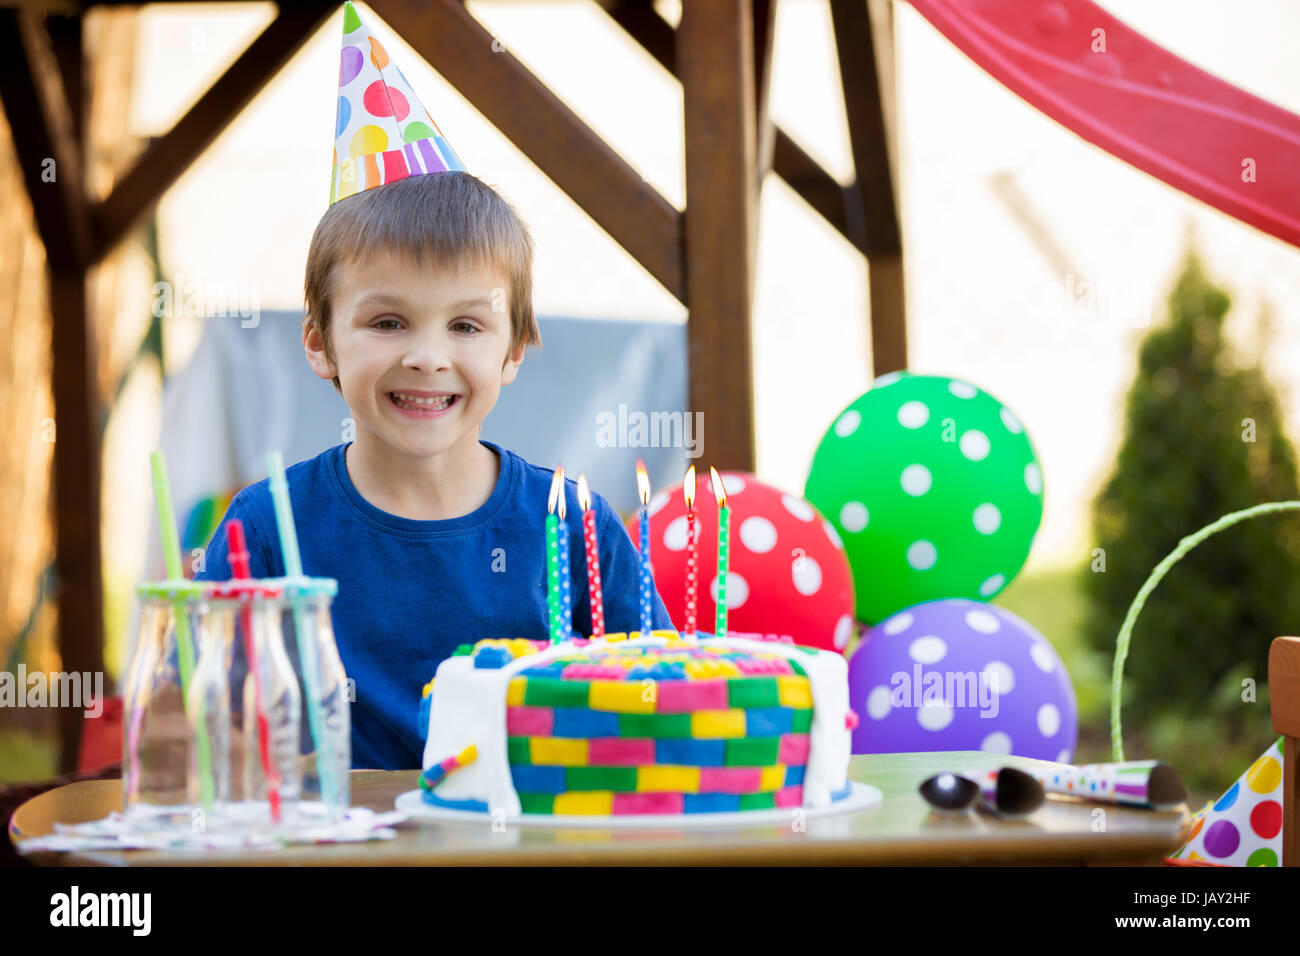 Sweet little child, boy, celebrating his sixth birthday, cake, balloons, candles, cookies. Childhood happiness concept - Stock Image